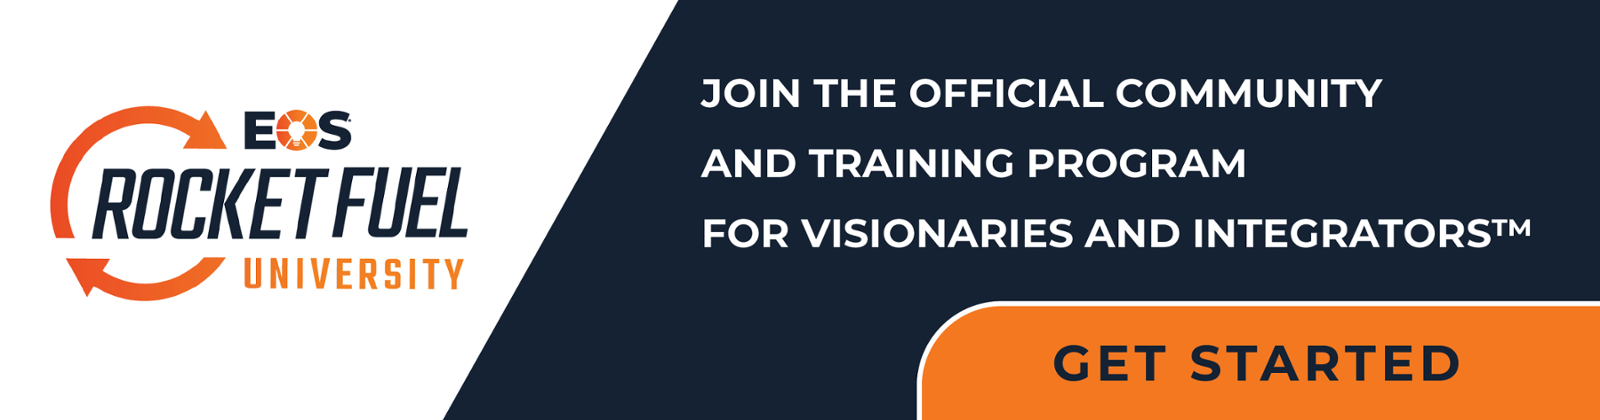 Join the official community and training program for visionaries and integrators